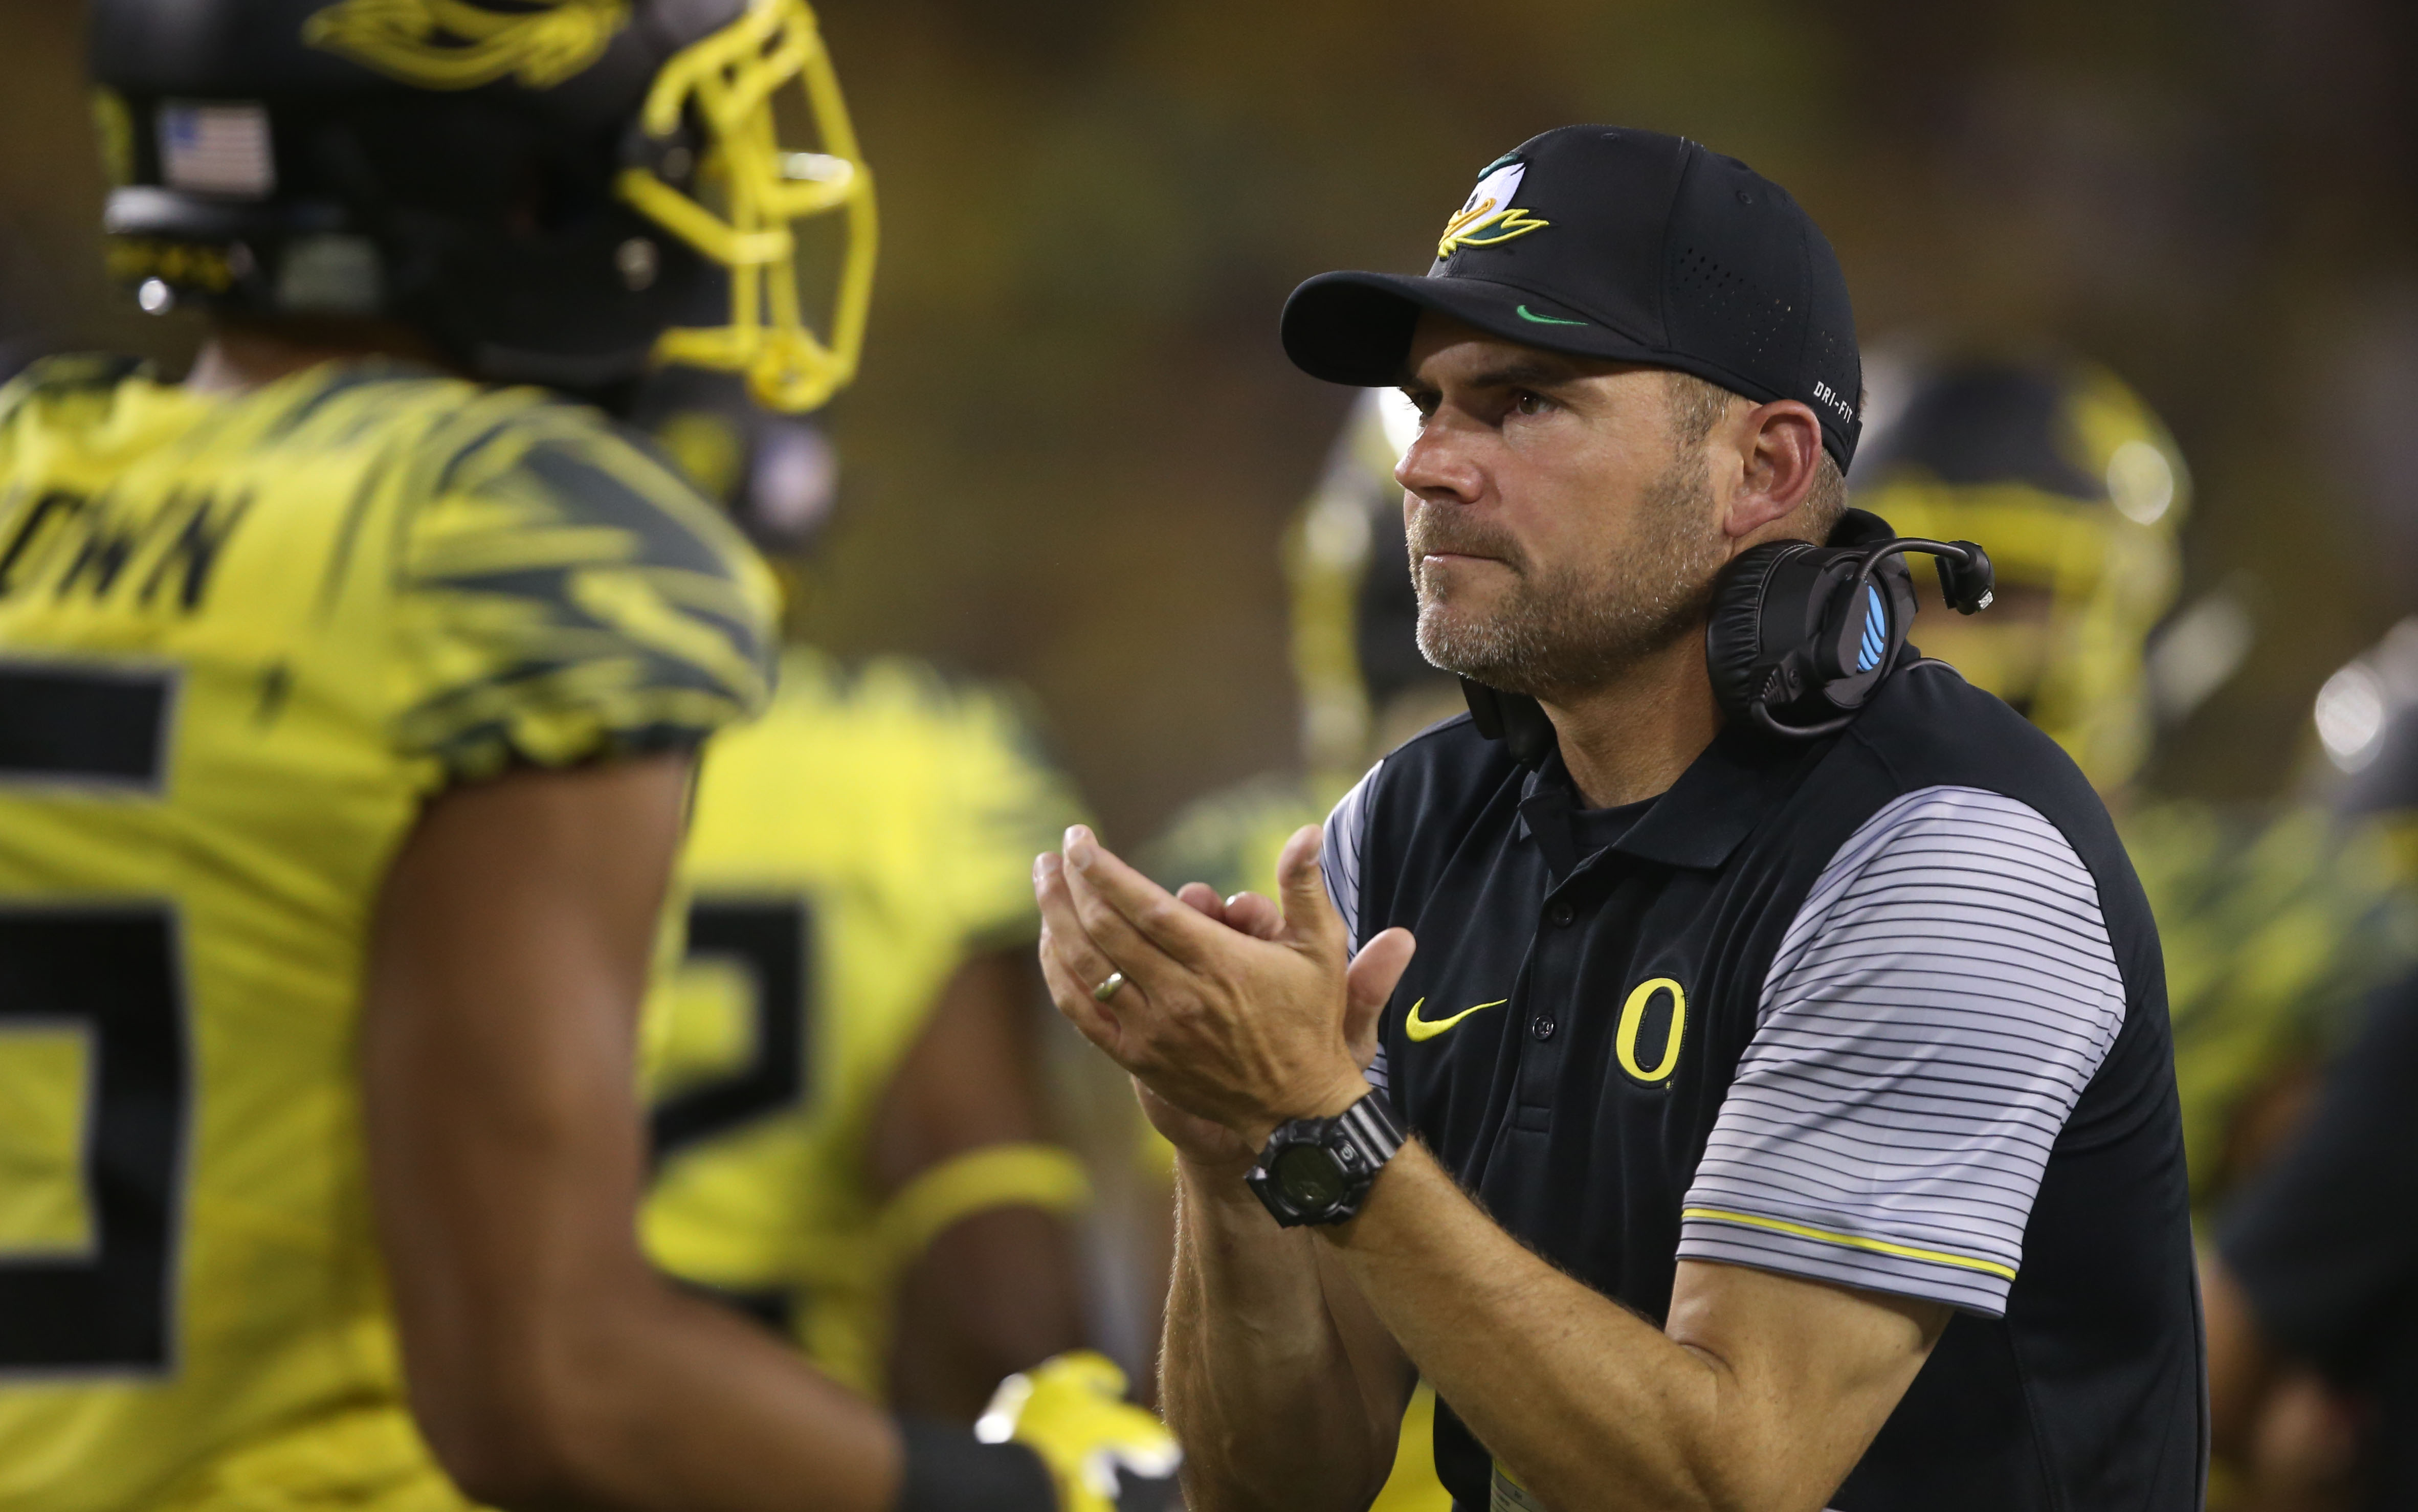 Oregon head coach Mark Helfrich, right, applauds his team as they return to the sidelines after scoring a touchdown against Virginia during the second quarter of an NCAA college football game Saturday, Sept. 10, 2016 in Eugene, Ore. (AP Photo/Chris Pietsc